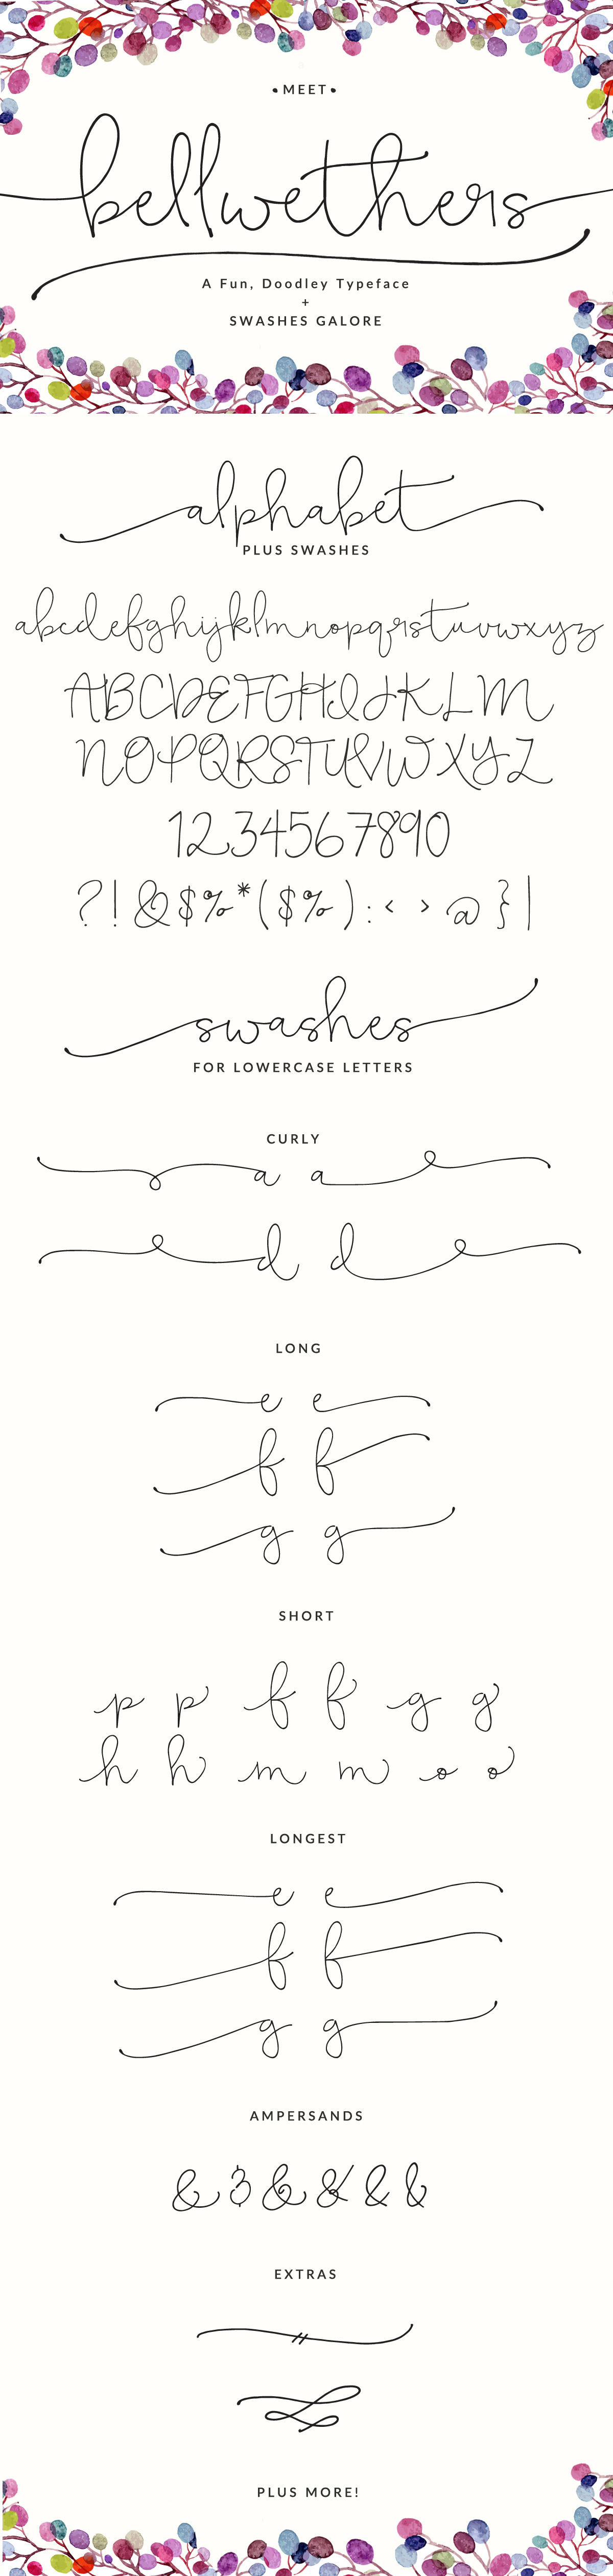 Bellwethers Font, a Fun Doodly Typeface. Fun curly hand-written font great for wedding invitations, logos and more.